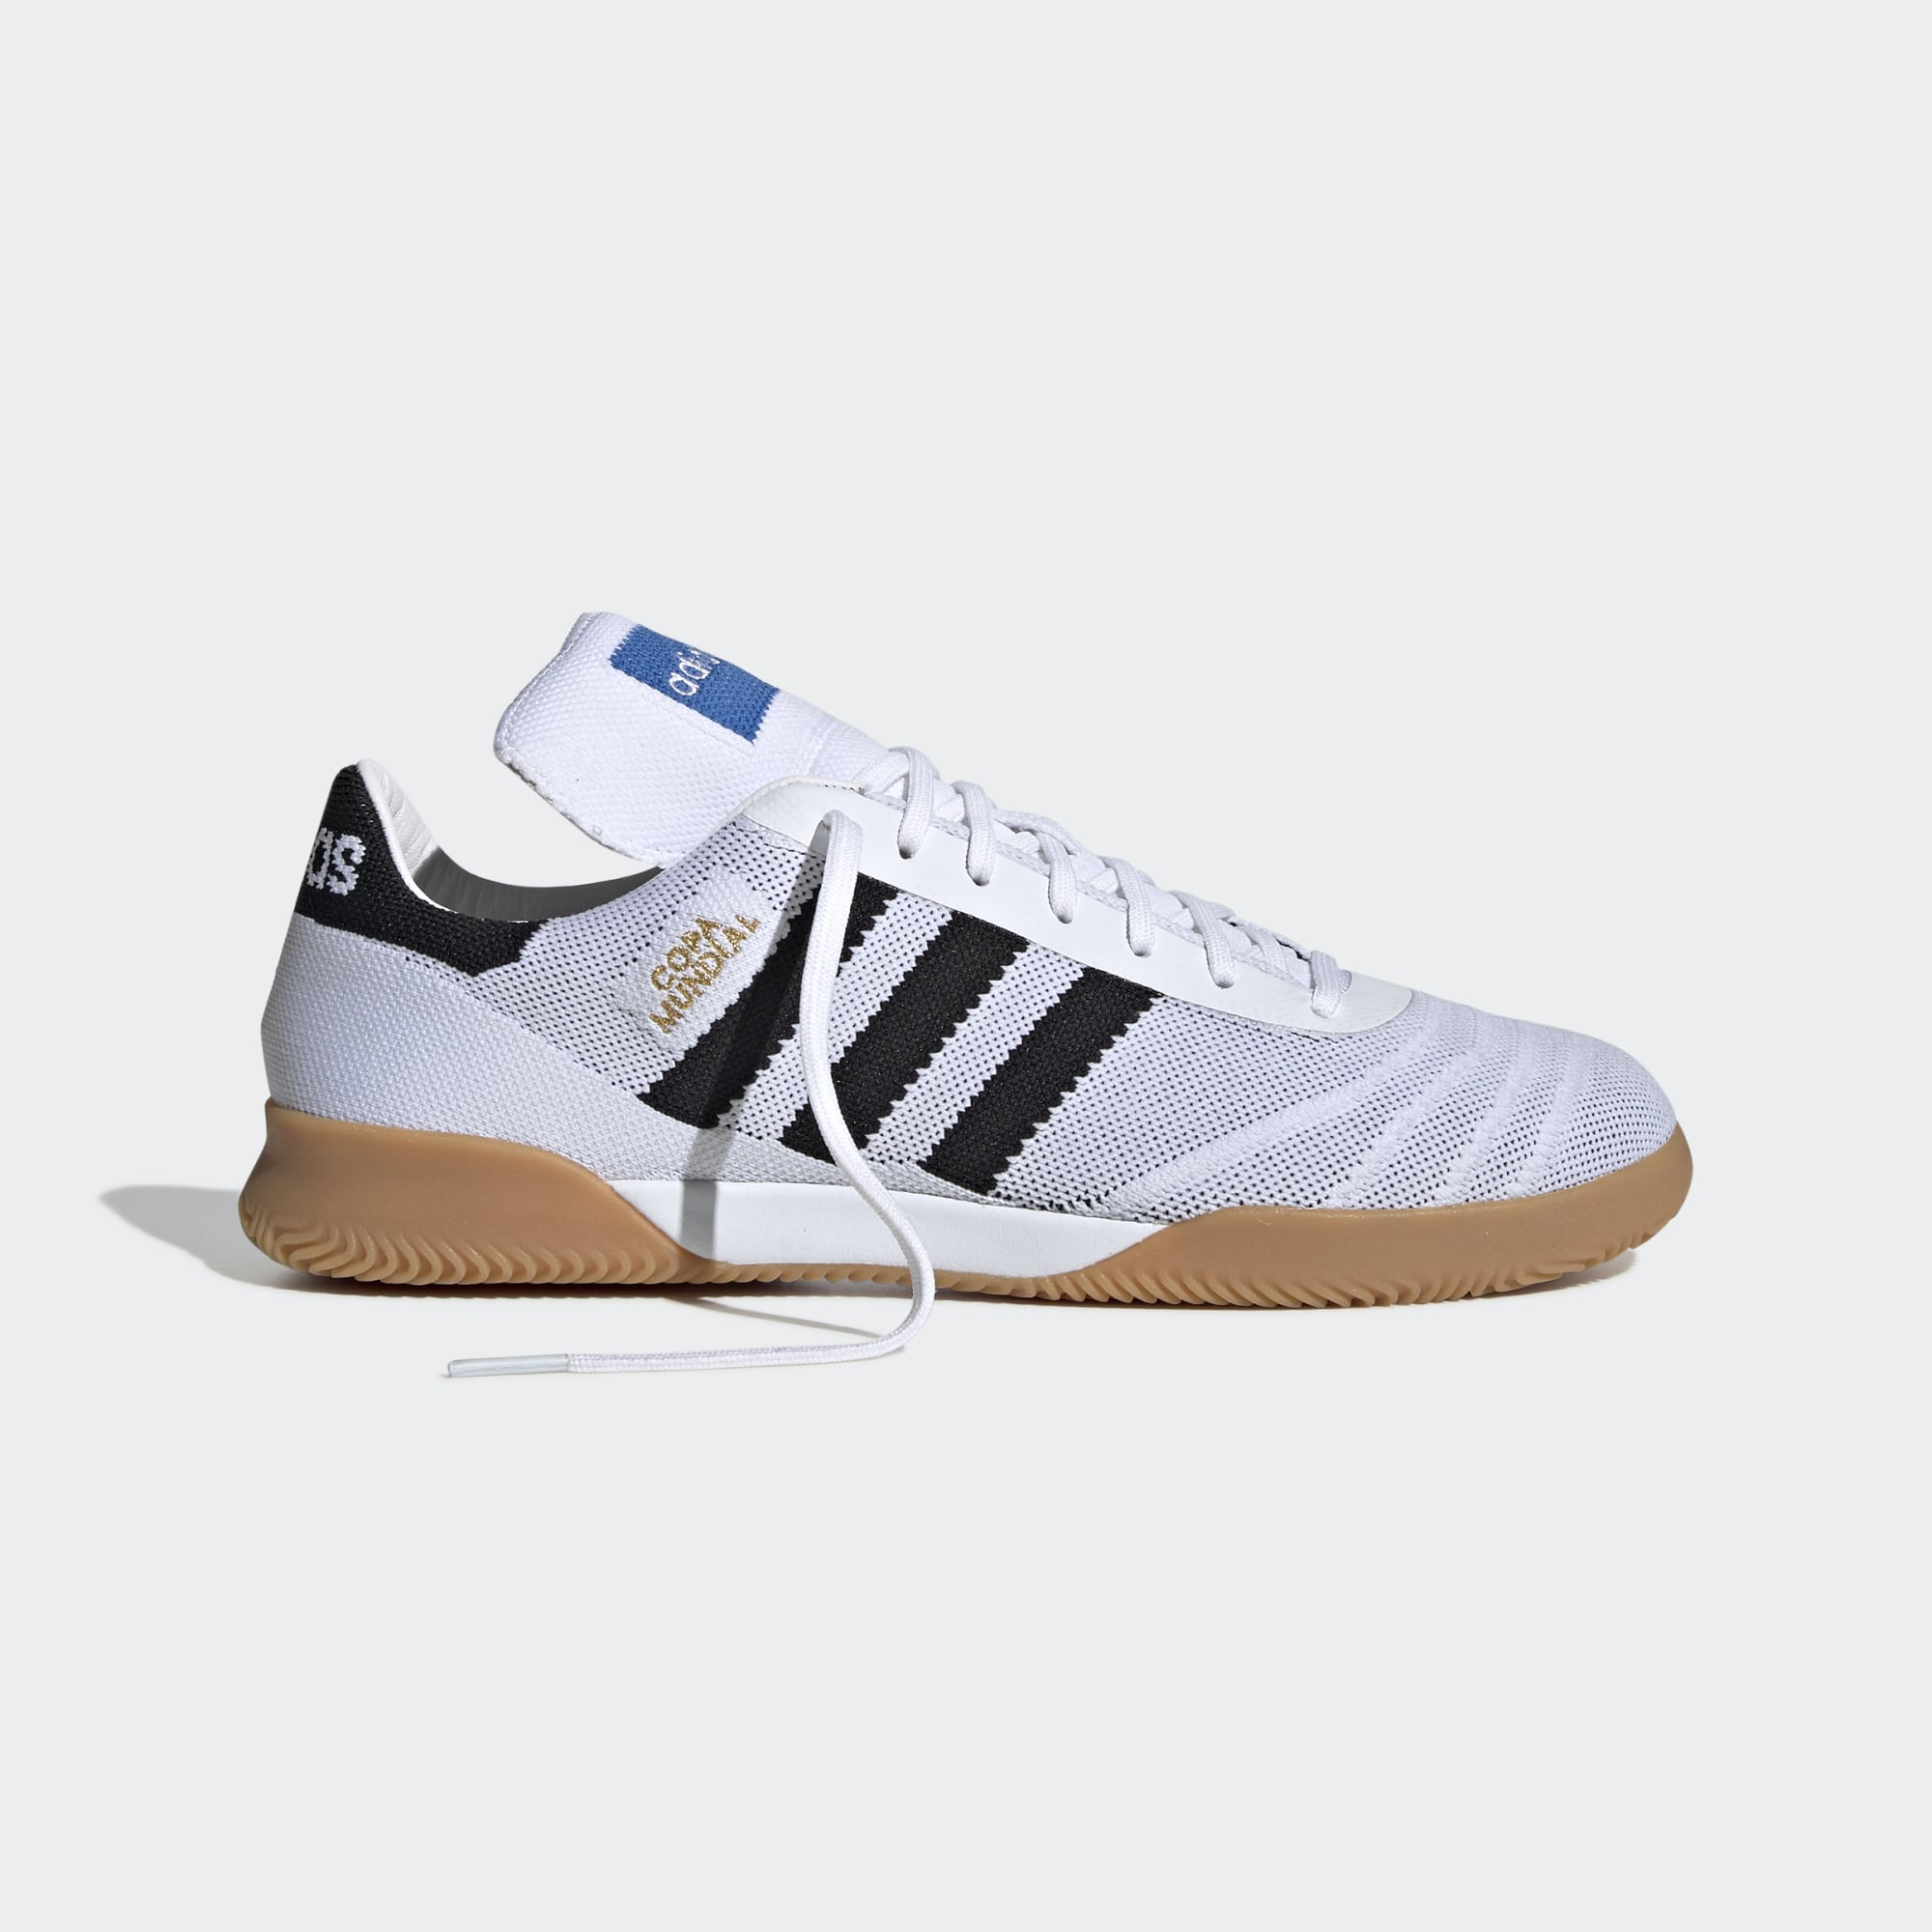 ec575d06f85 ... Click to enlarge image  adidas copa mundial 70 years trainers ftwr white core black red 5.jpg ...